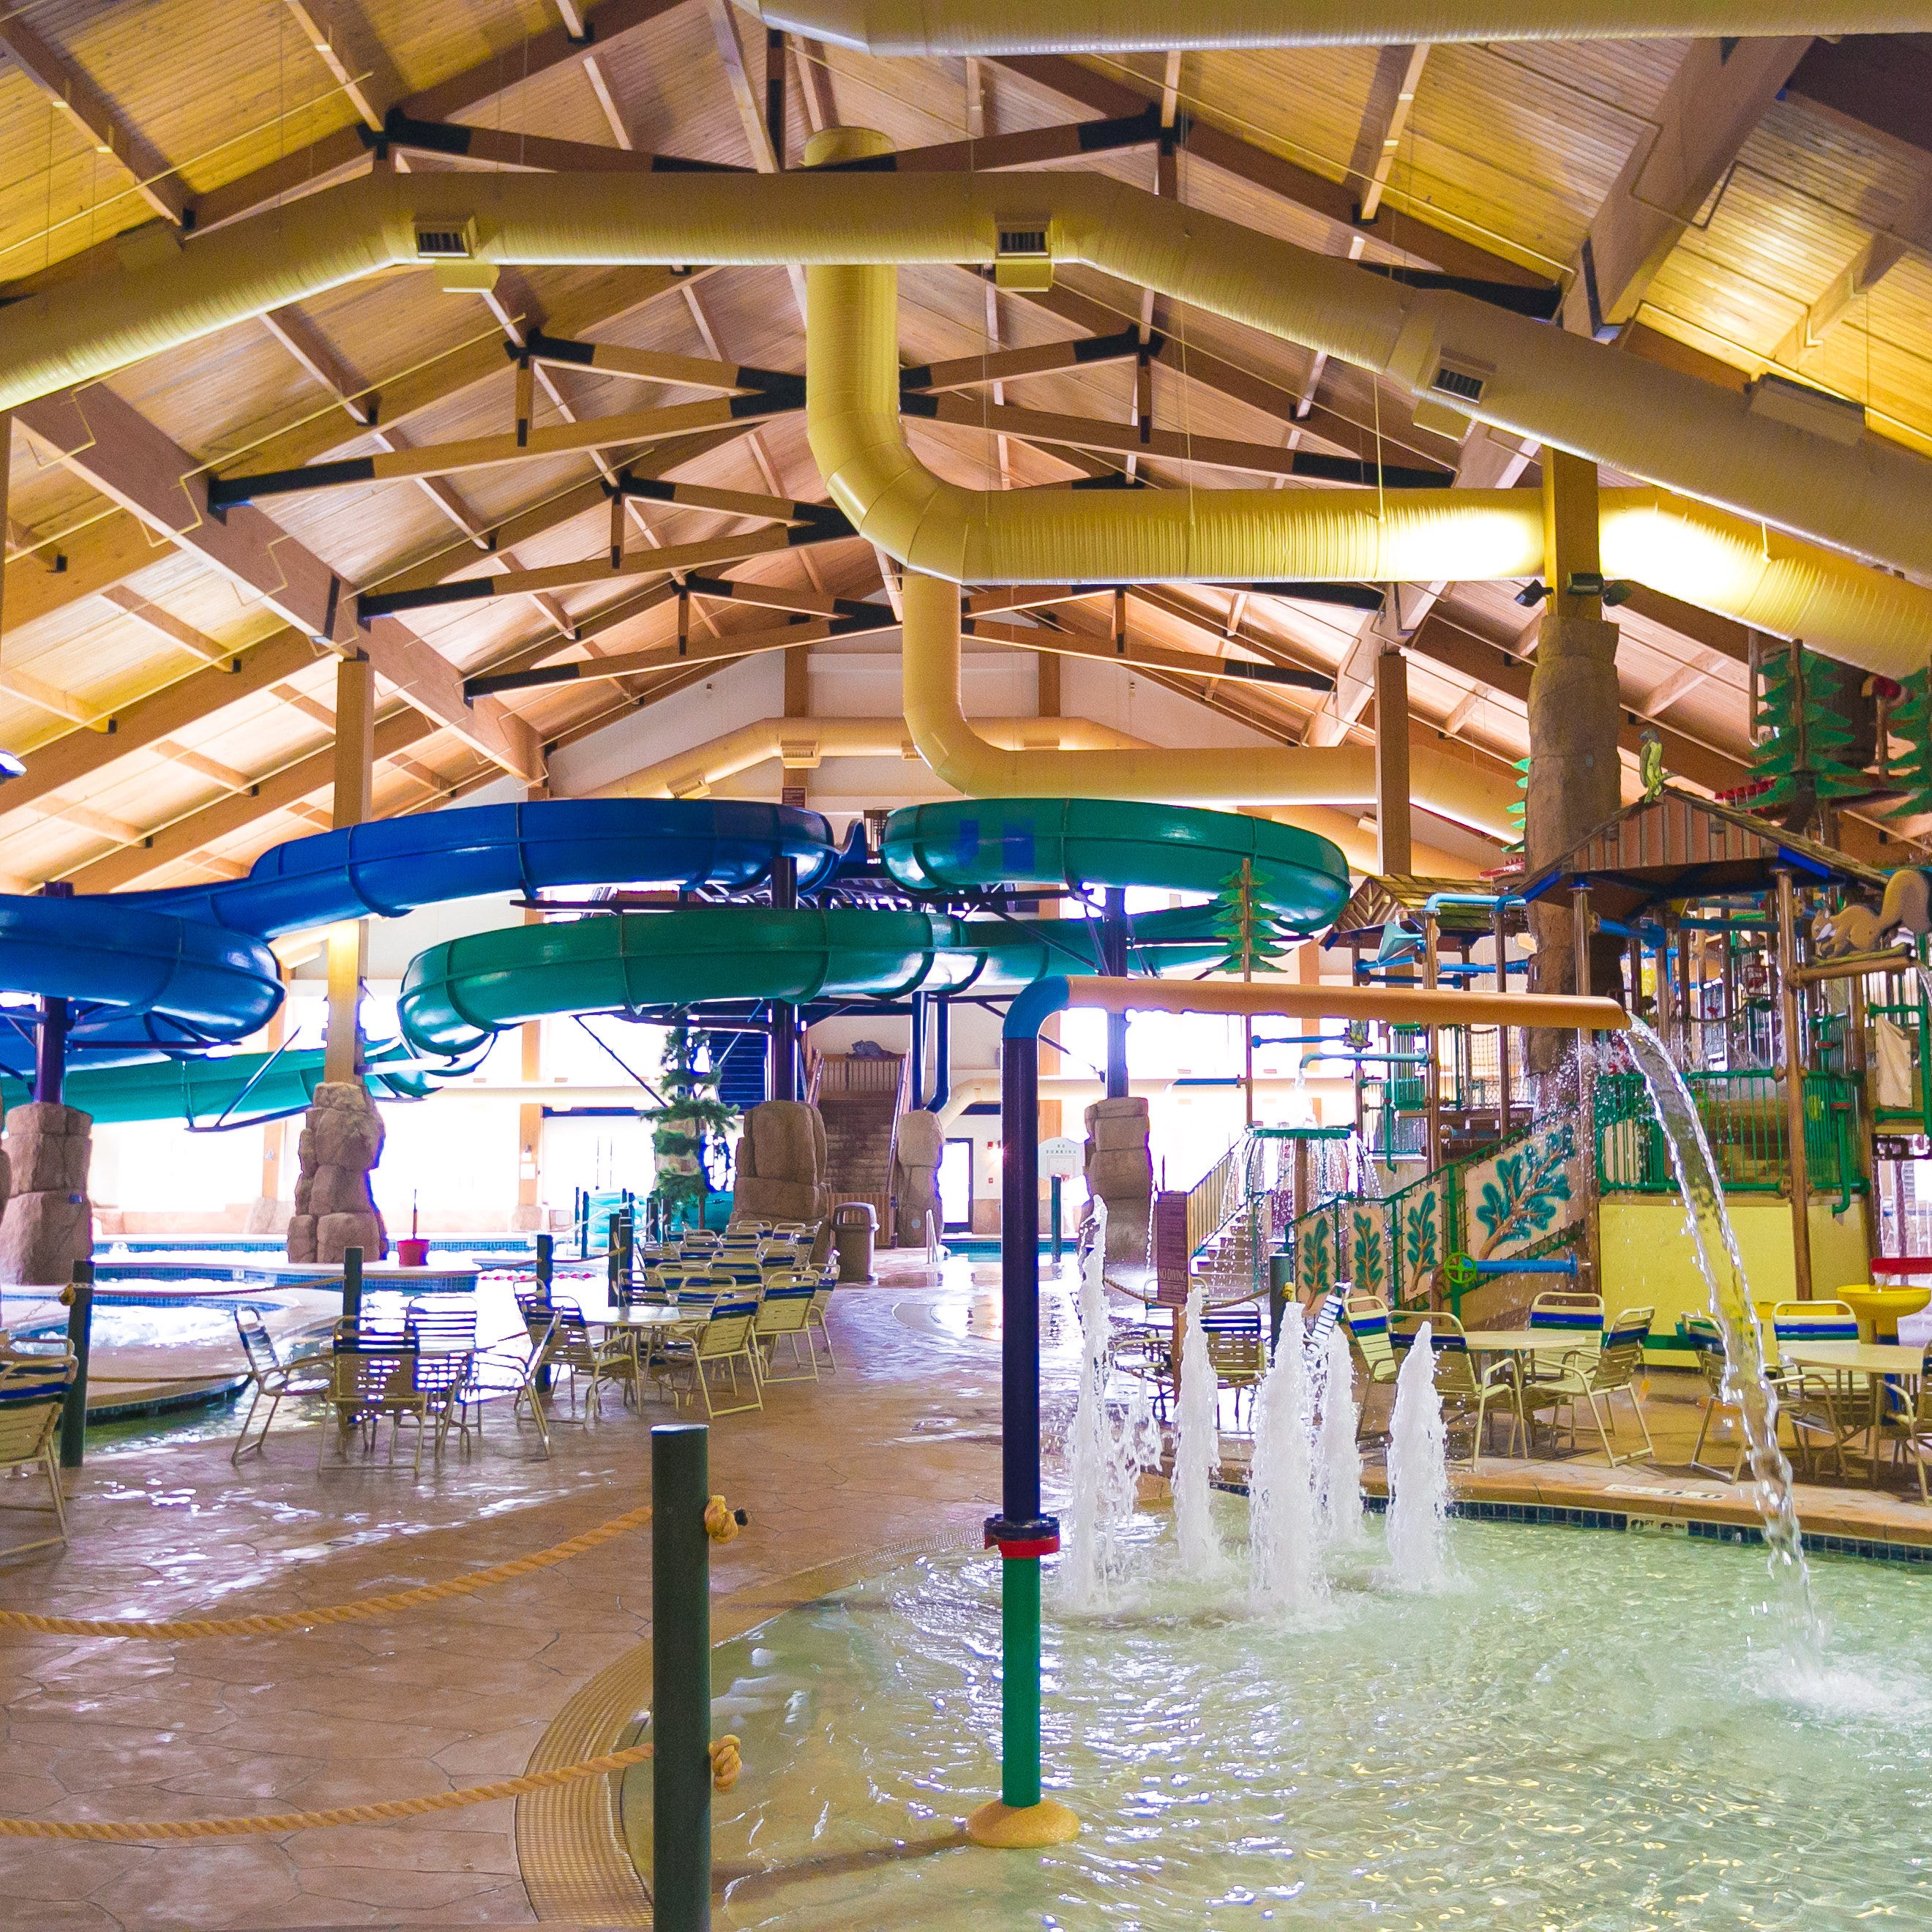 Indoor waterparks provide a dose of the tropics in a Midwest winter